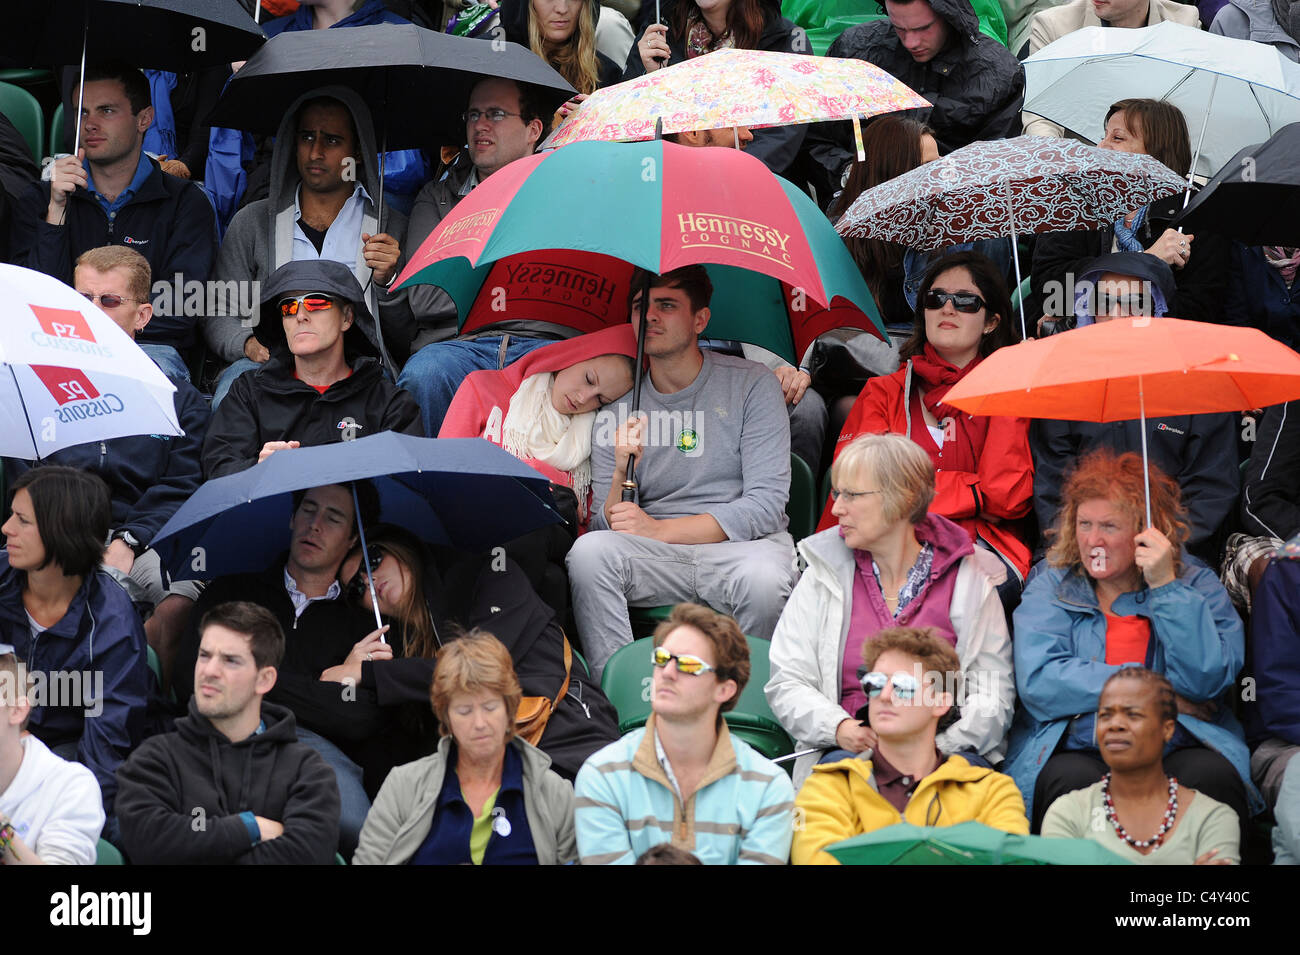 RAIN DELAY UMBRELLAS UP WIMBLEDON CHAMPIONSHIPS 2011 WIMBLEDON LAWN TENNIS CLUB WIMBLEDON ENGLAND 22 June 2011 - Stock Image